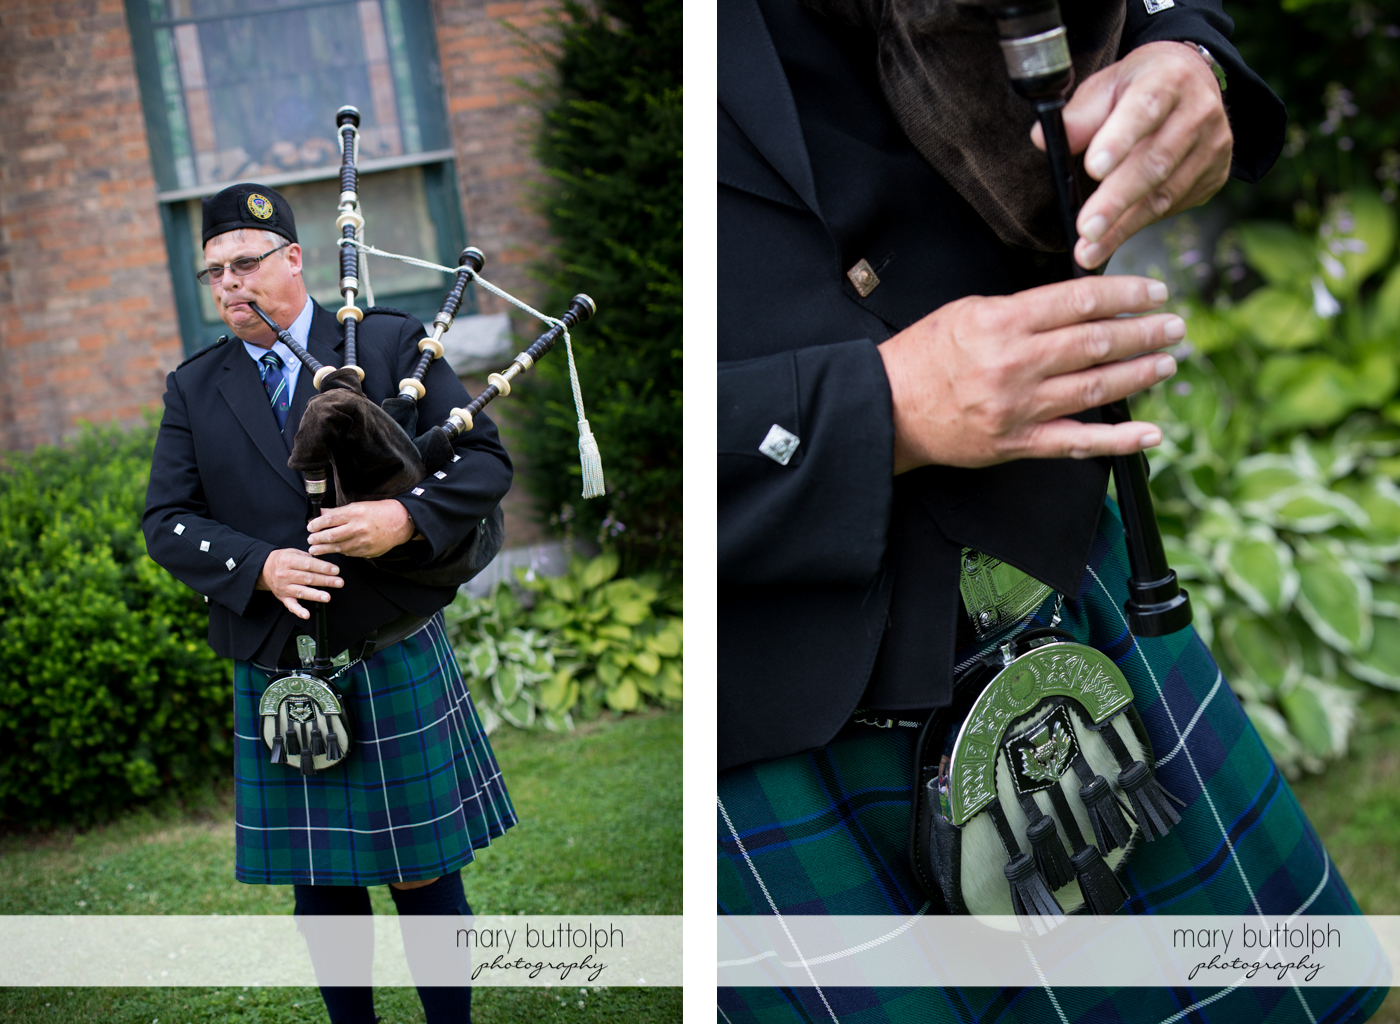 Two shots of the bagpipe player in the garden at the Inns of Aurora Wedding